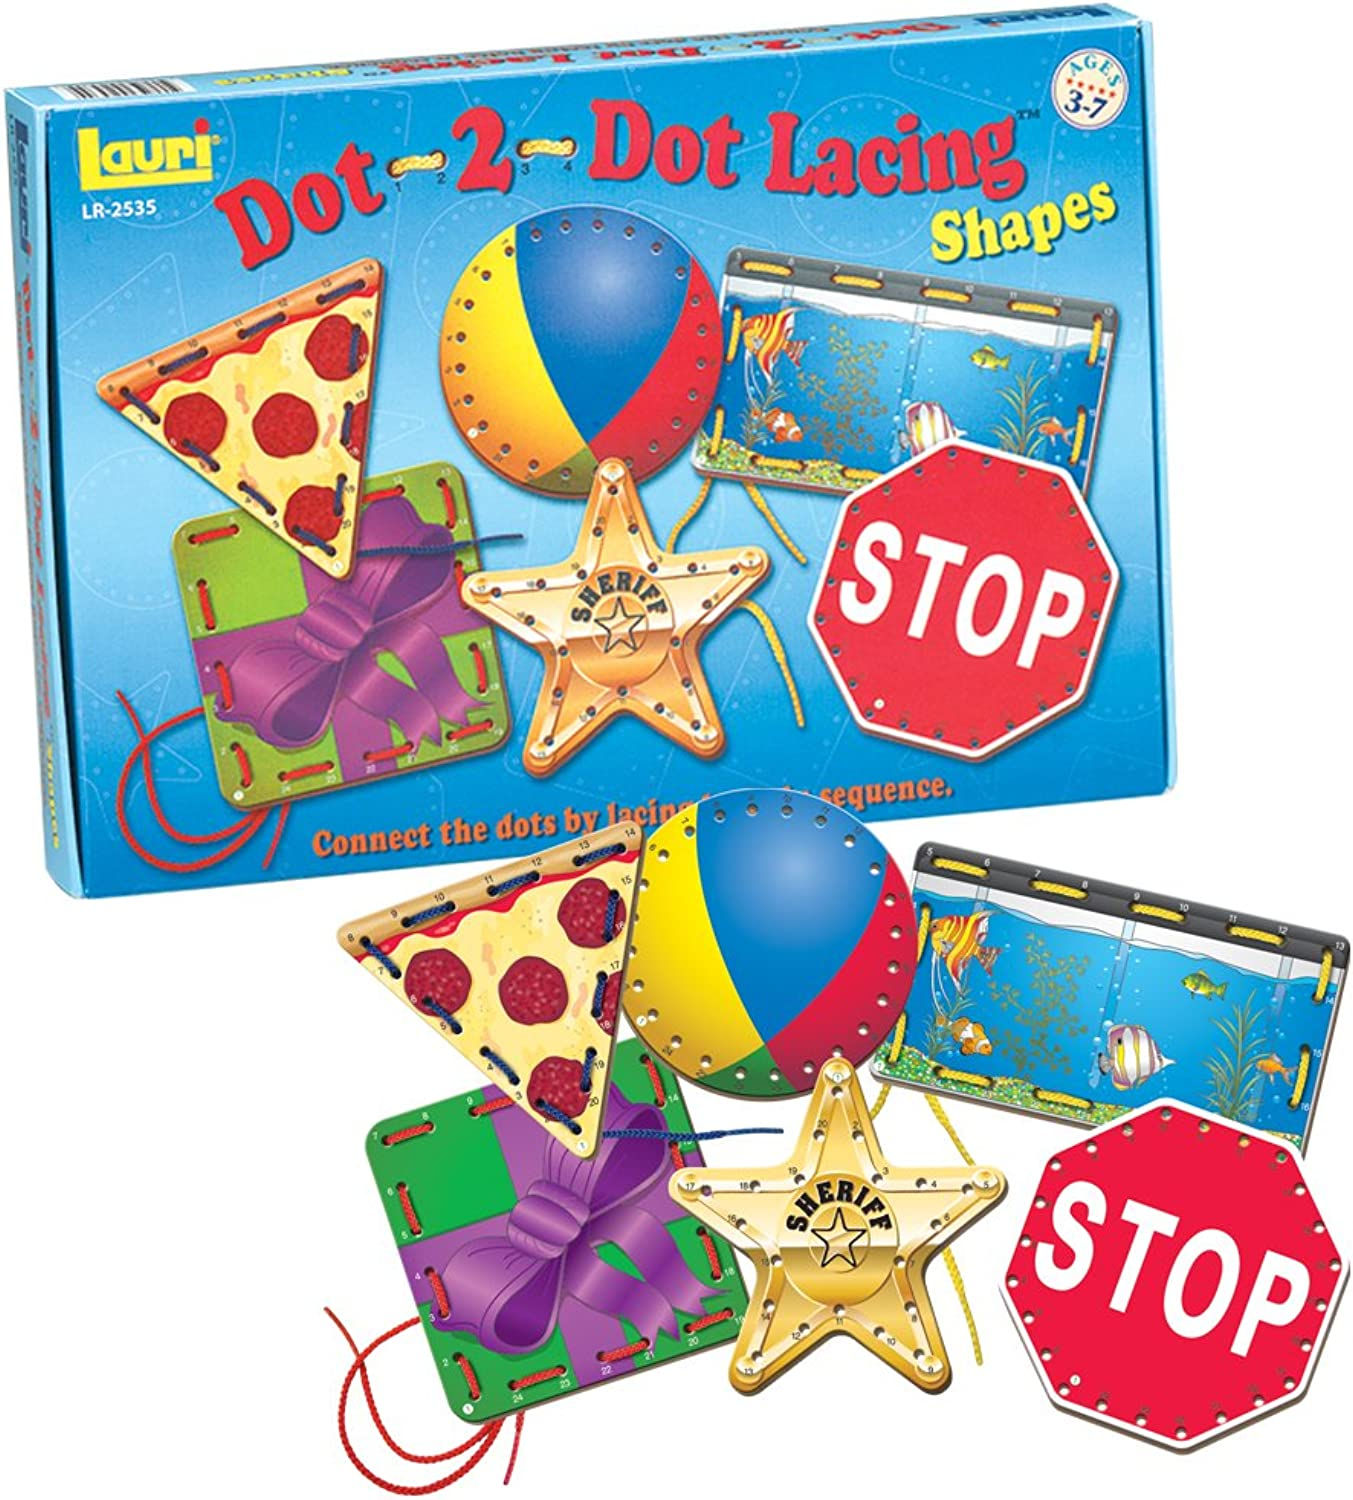 Patch Products Dot2Dot Lacing Shapes